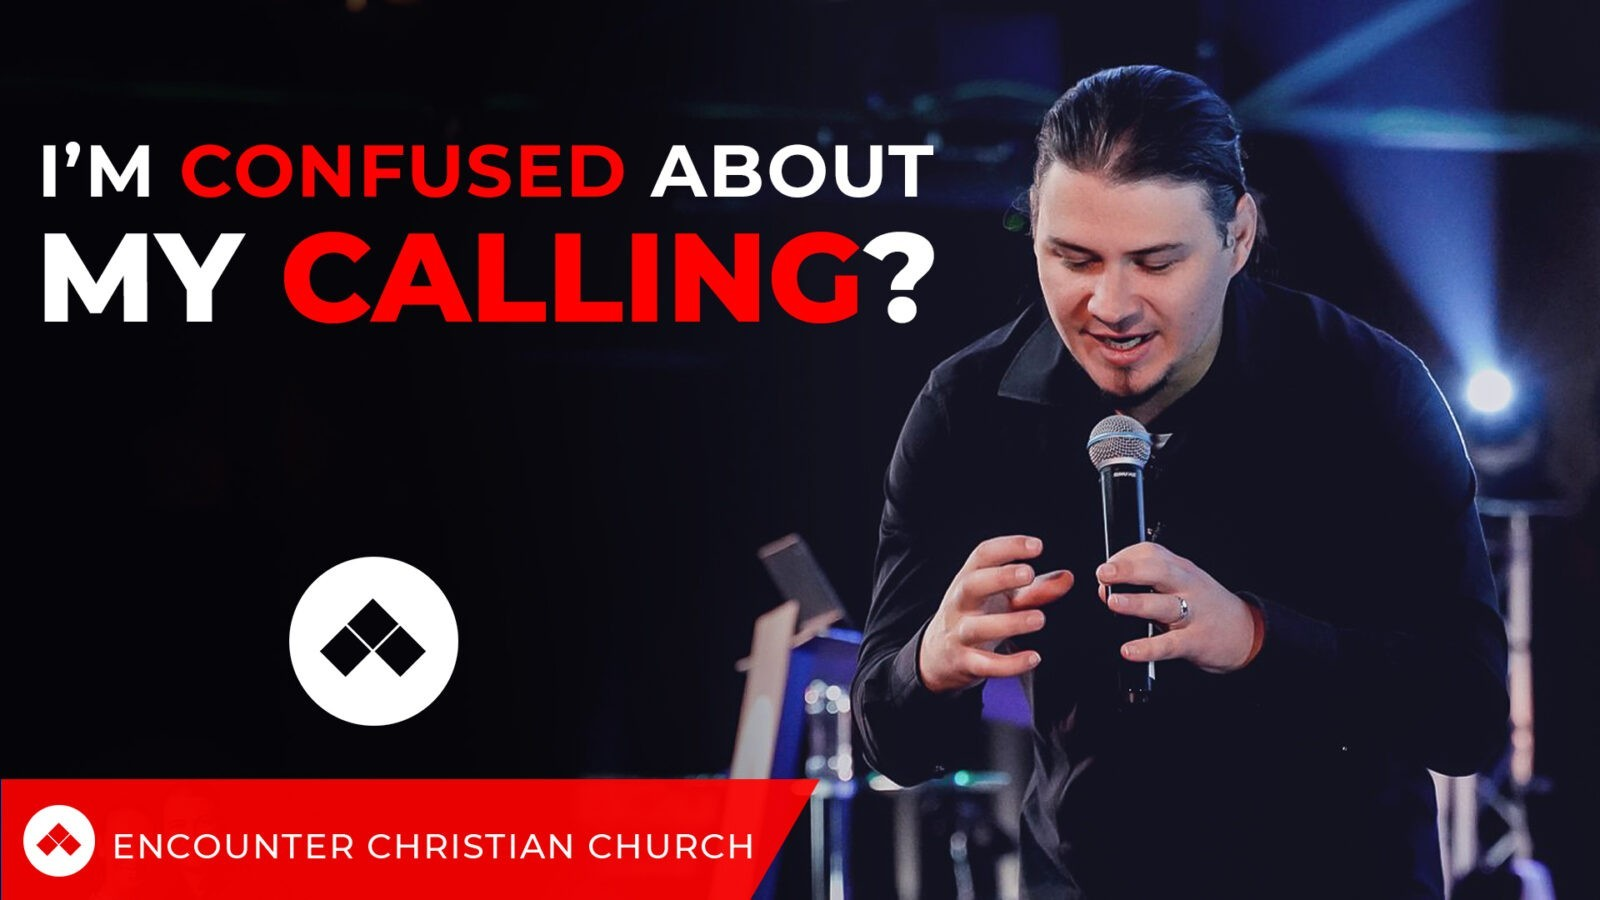 I'm Confused About My Calling